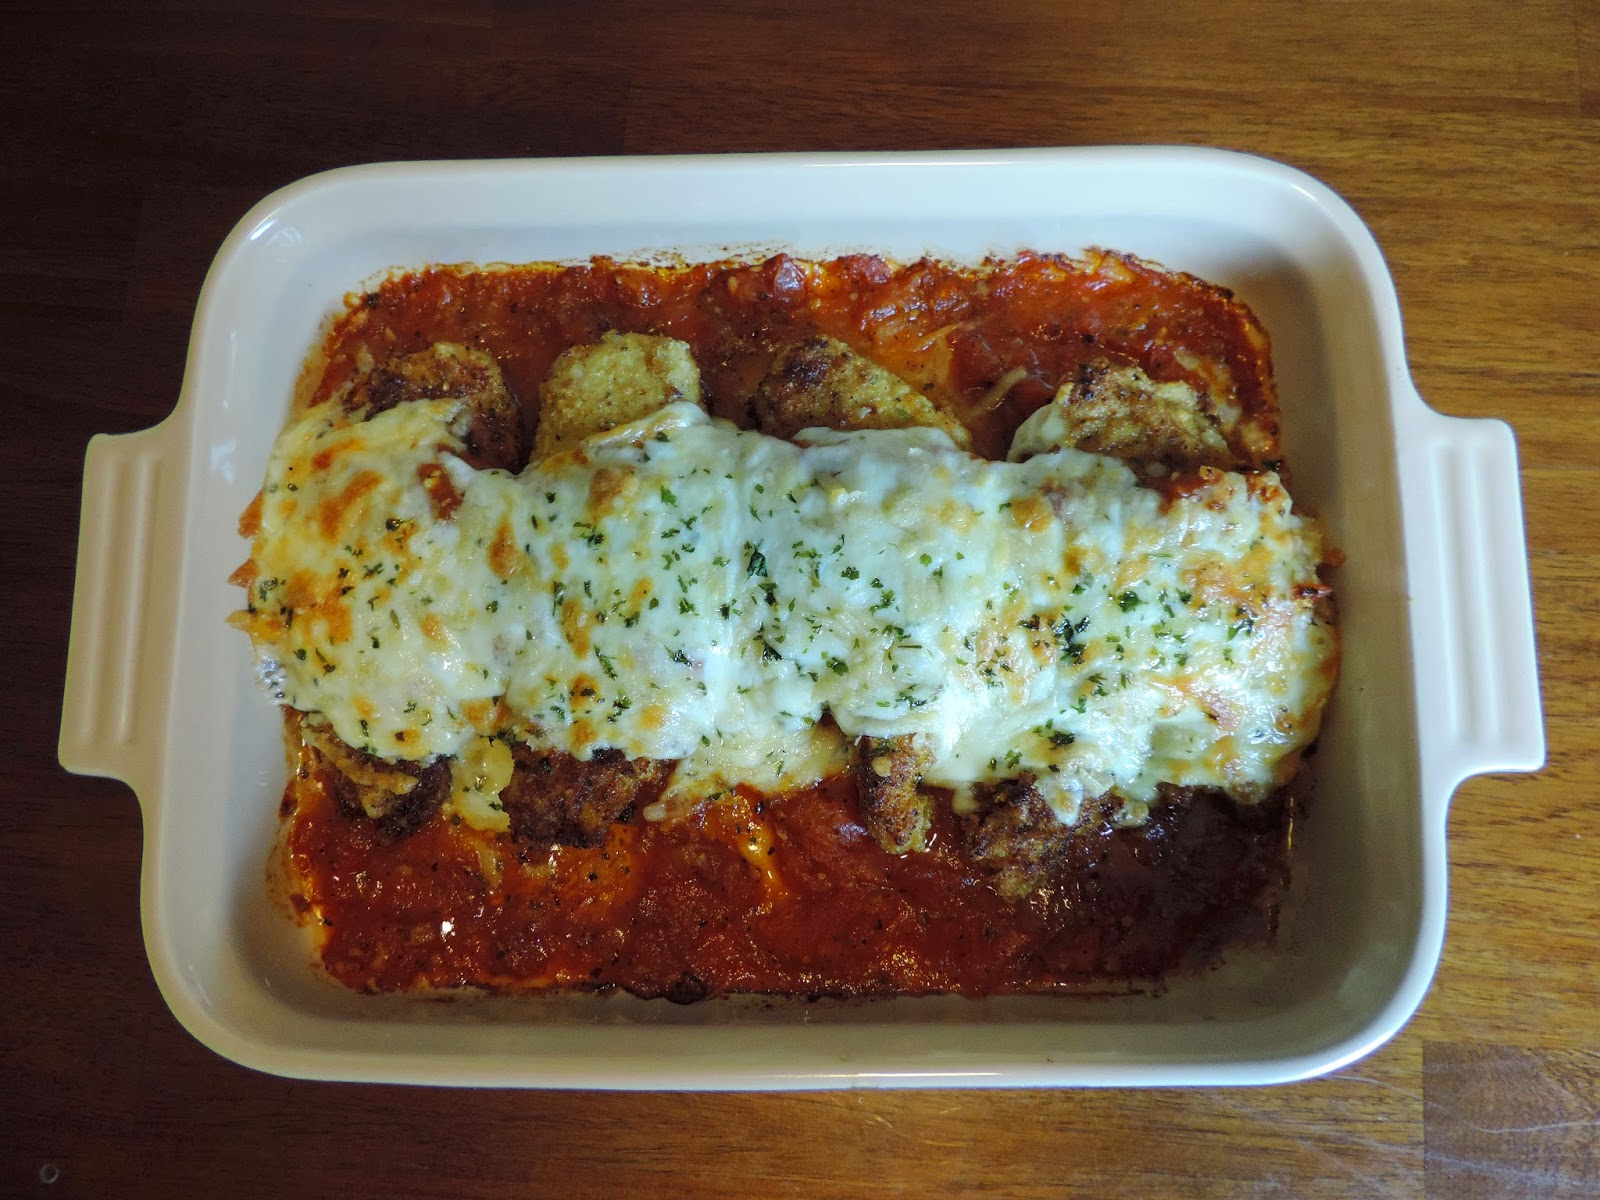 The finished chicken parmesan.